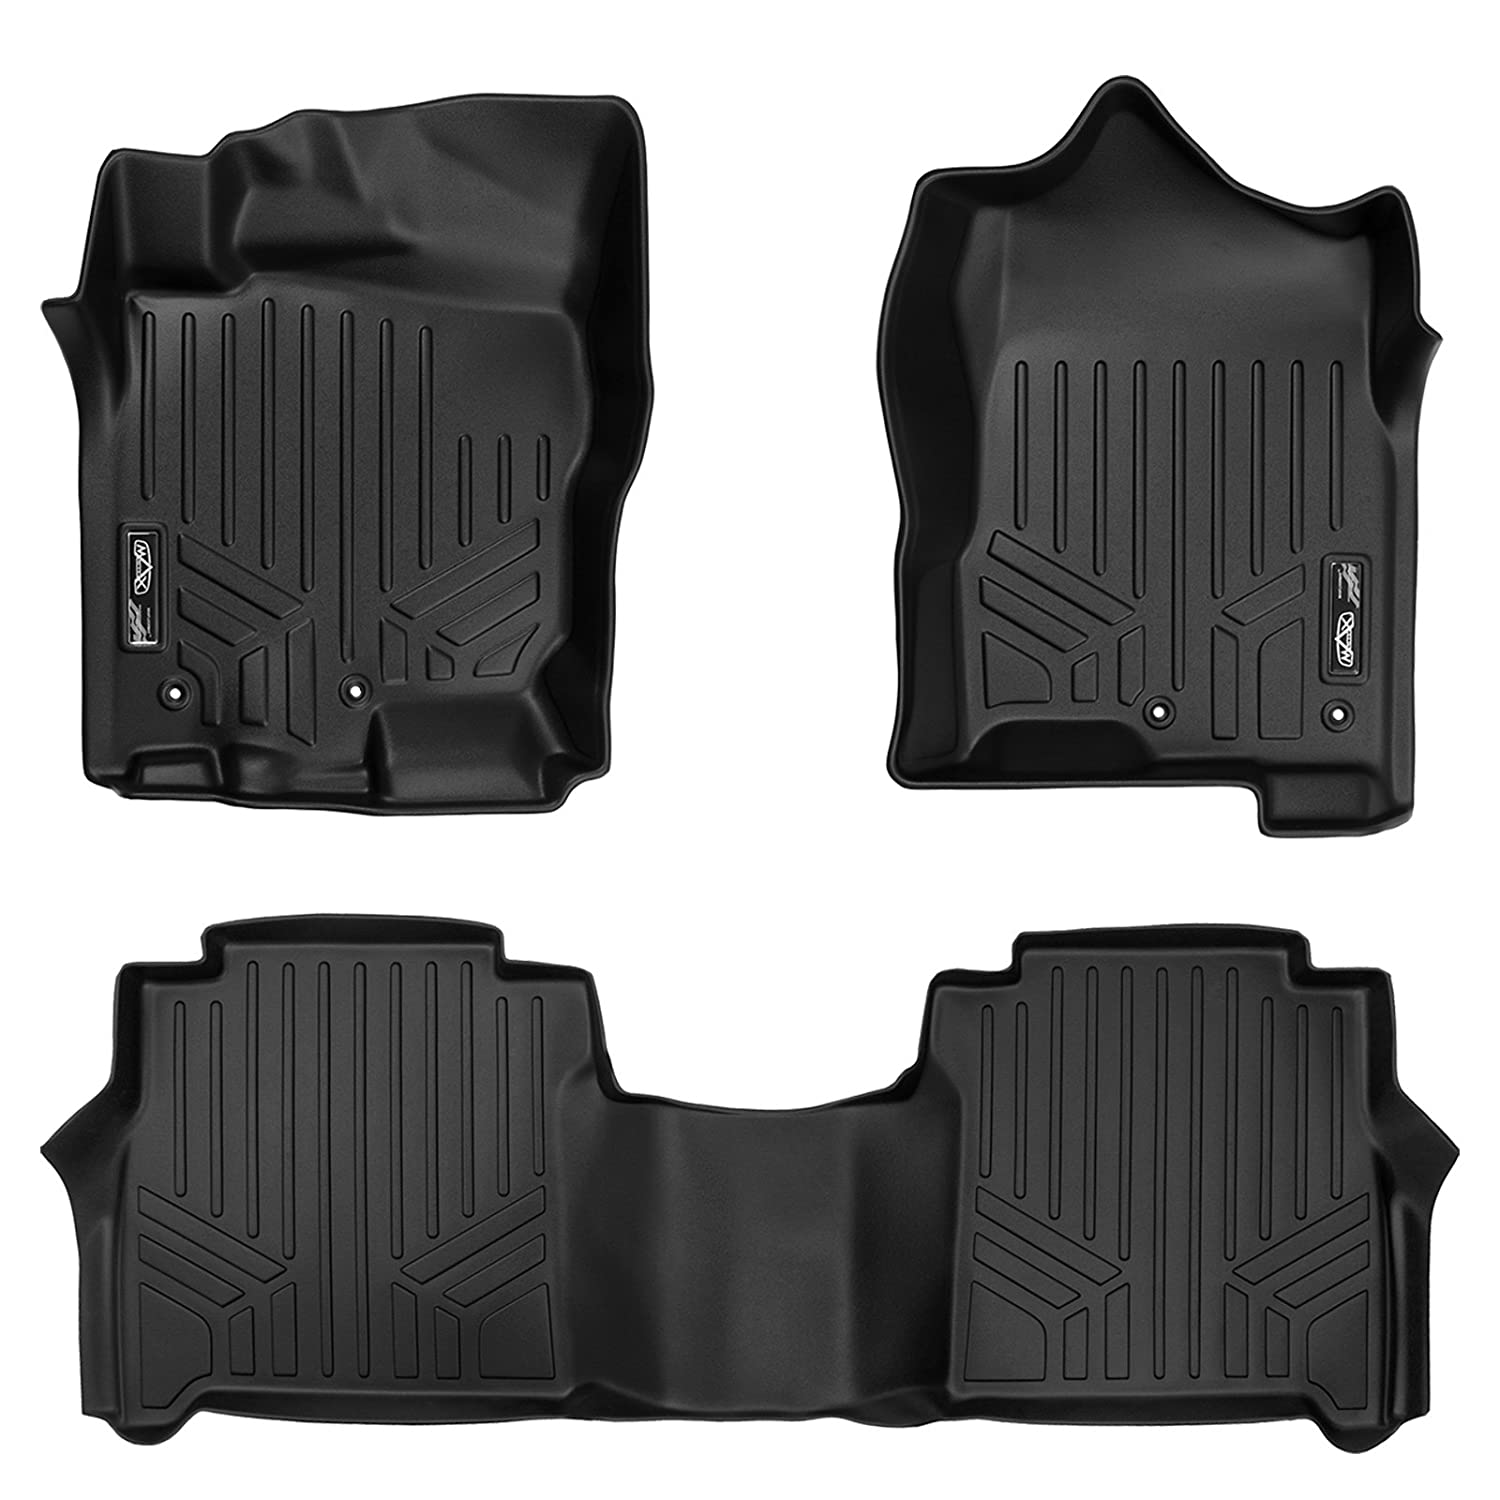 MAXLINER A0216/B0216 Floor Mats Set Black for Crew Cab 2017-2019 Titan / 2016-2019 Titan XD (with Rear Under Seat Organizer)